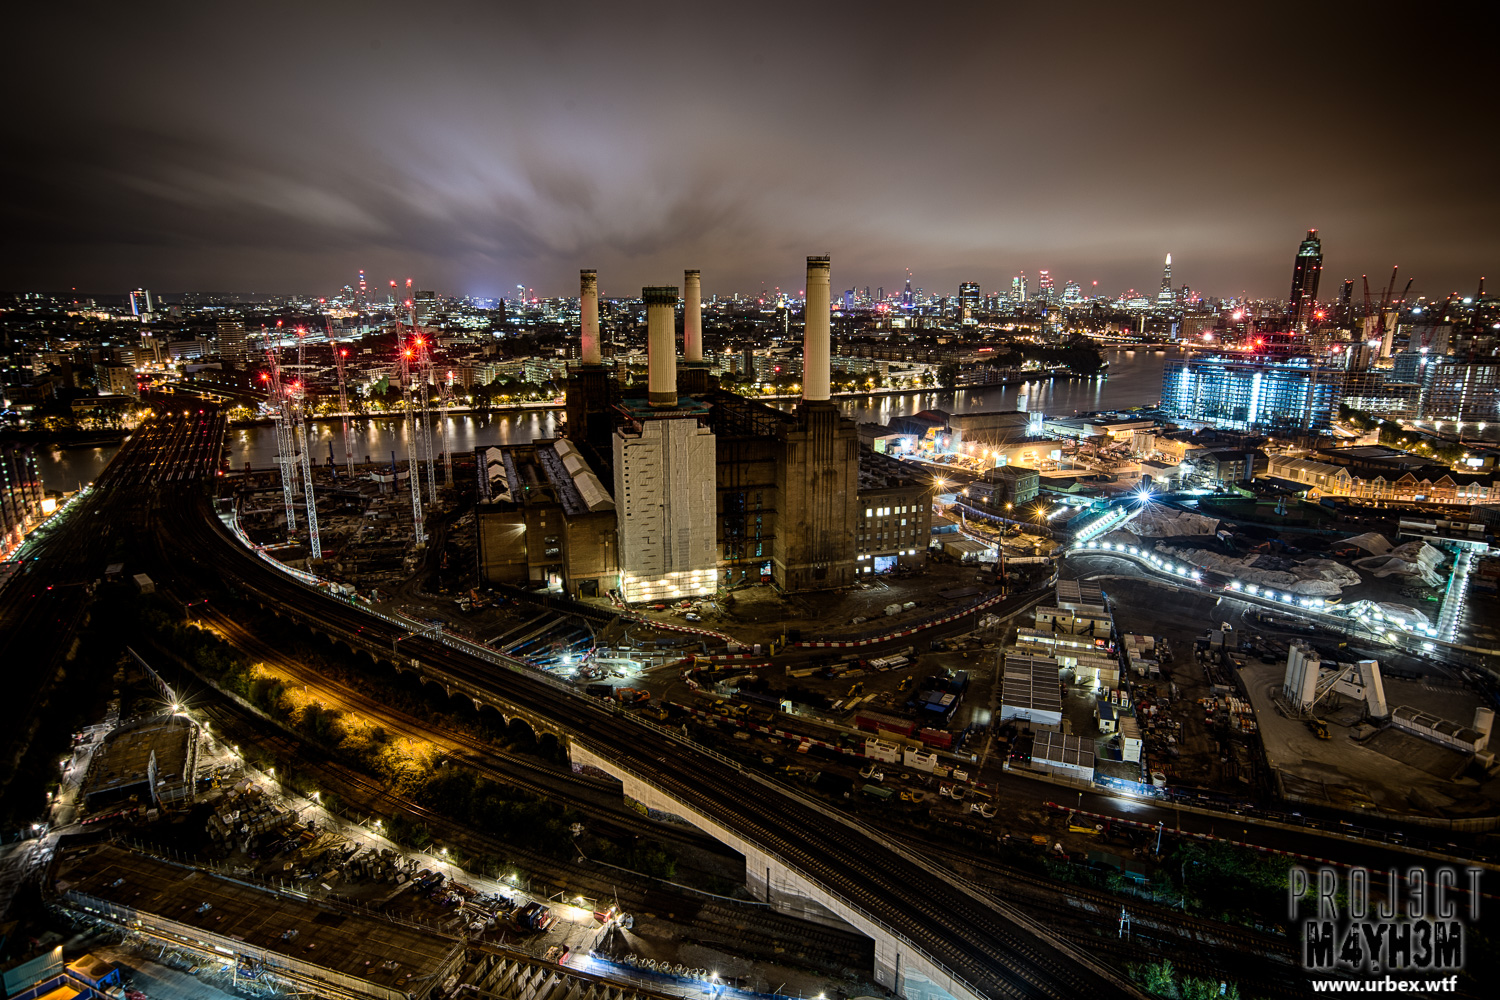 Up And Coming Areas In London >> PROJ3CTM4YH3M Urban Exploration | Urbex: London Rooftops, Battersea Power Station at night ...